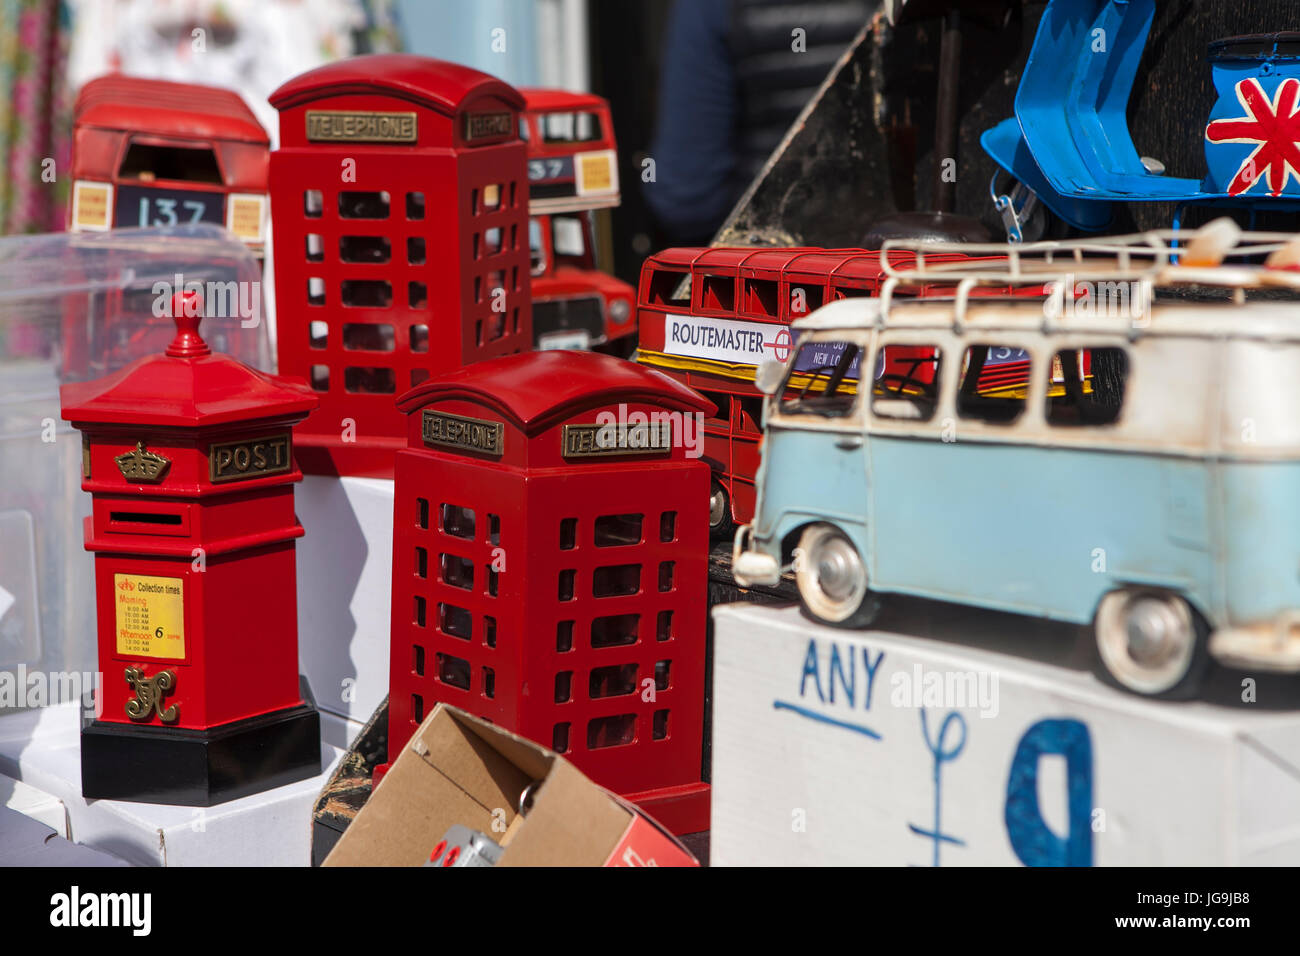 LONDON, ENGLAND - JULY 12, 2017 Many collectable old toy vehicles in bright colors on display in a window shop. Stock Photo